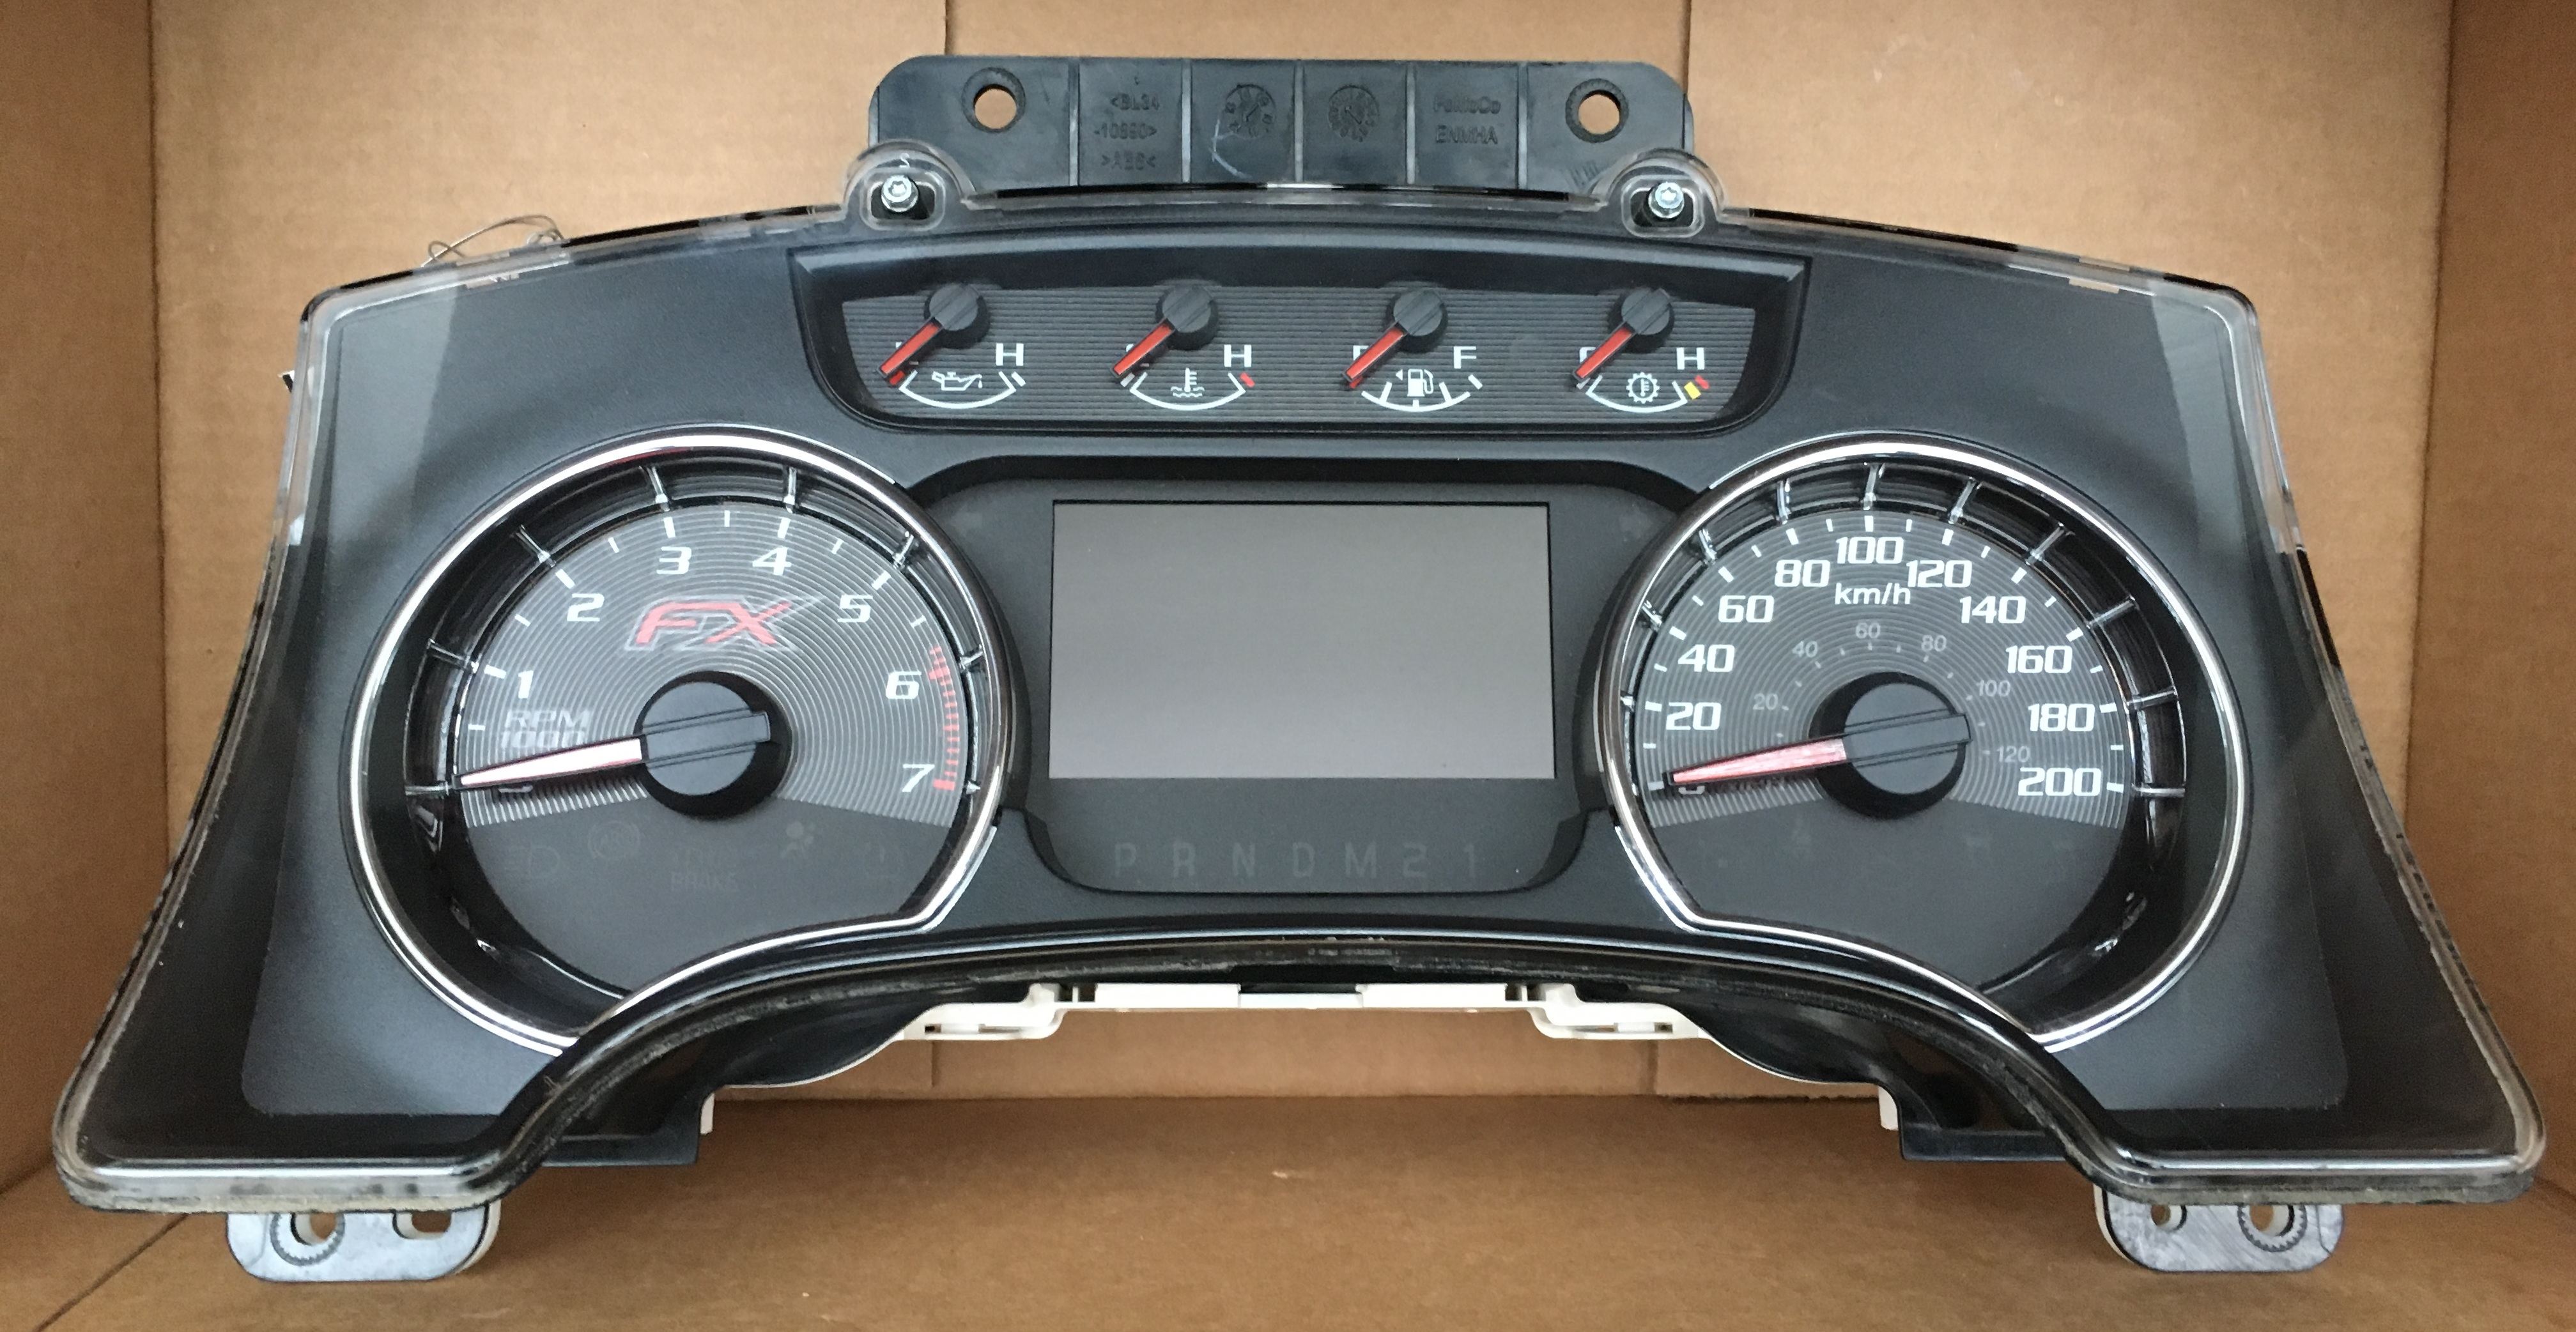 2013 FORD F150 FX2 USED DASHBOARD INSTRUMENT CLUSTER FOR SALE (KM/H)